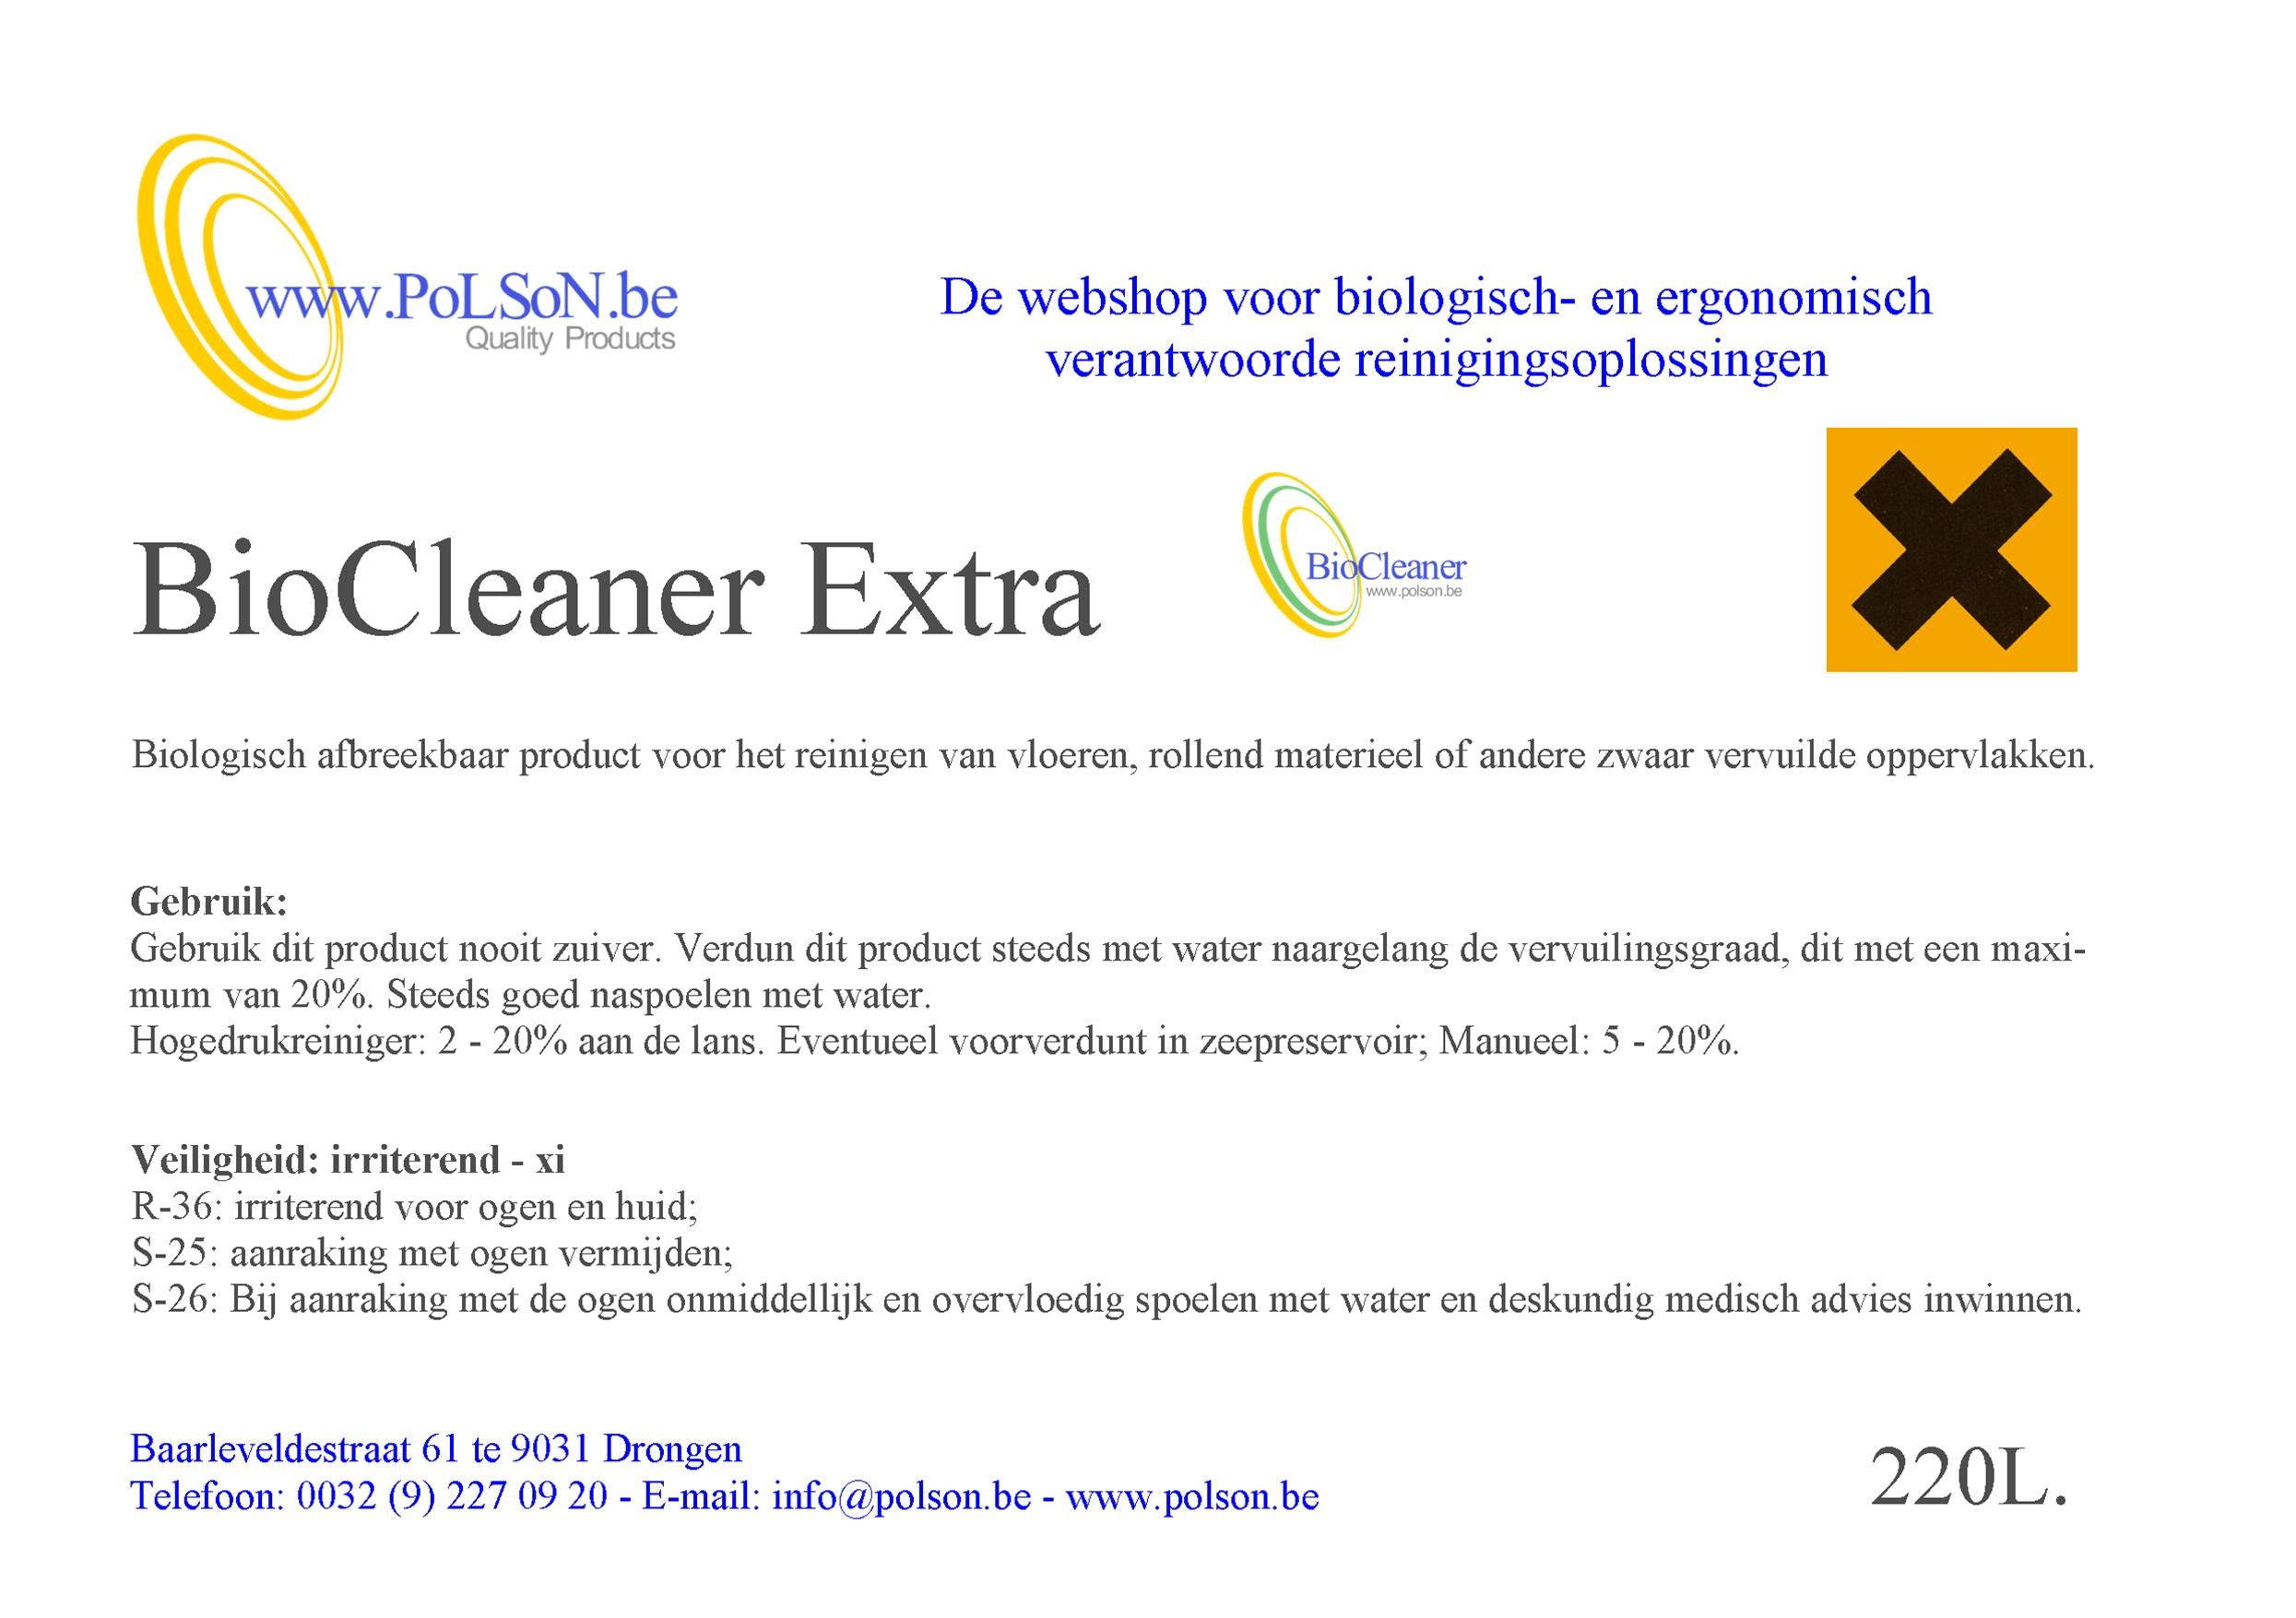 BIOCLEANER EXTRA 220L.